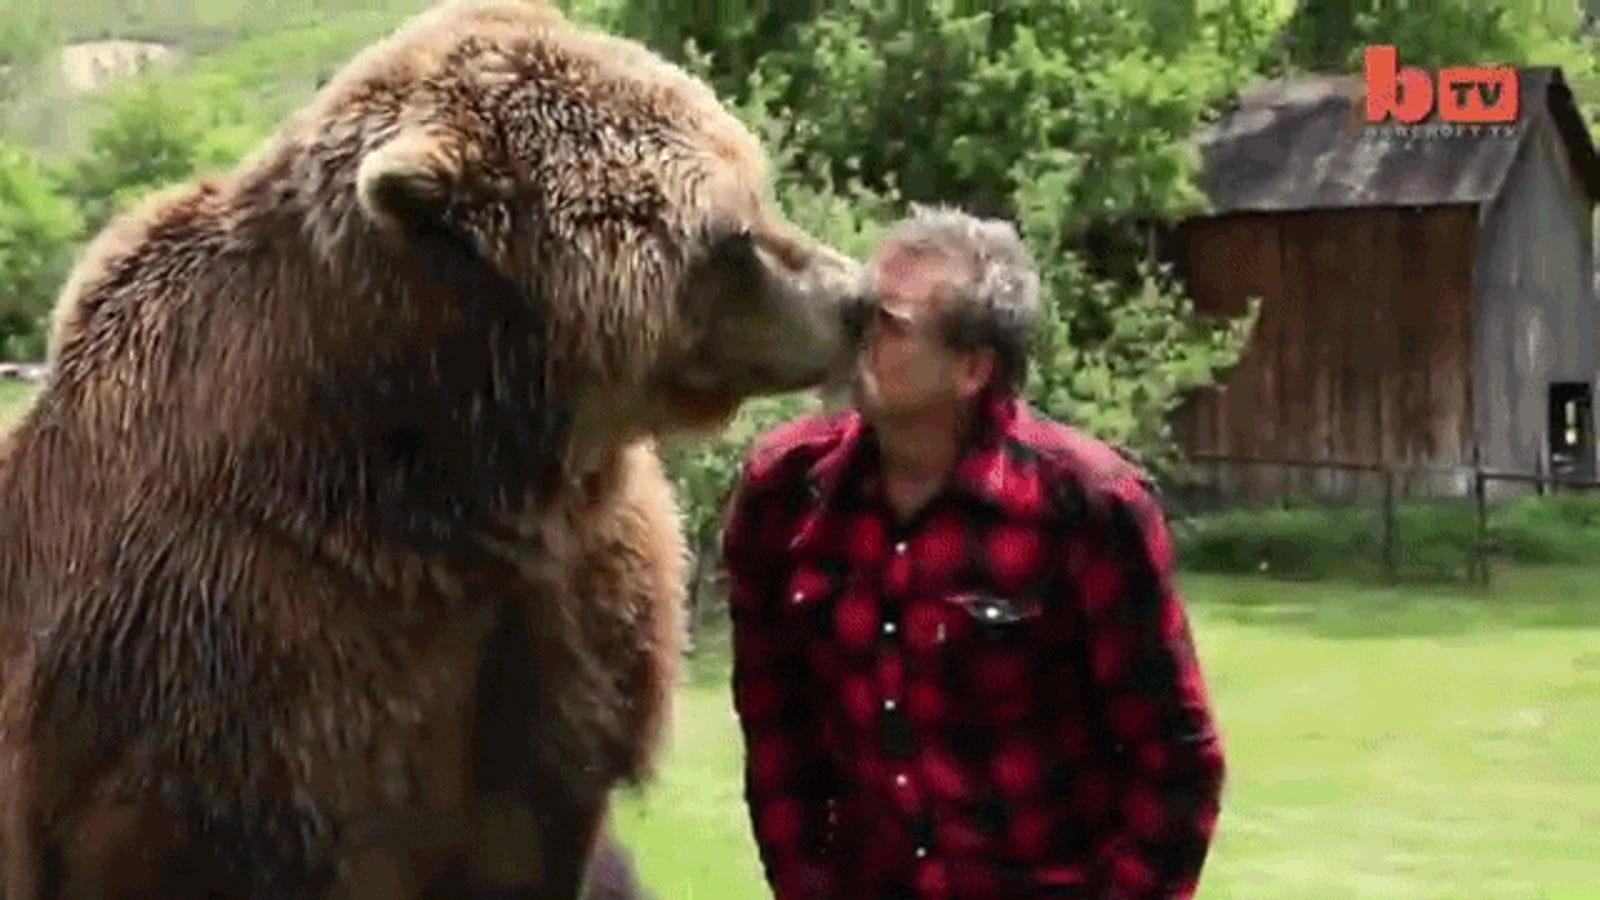 Fearless man plays with grizzly bears like you play with your dog